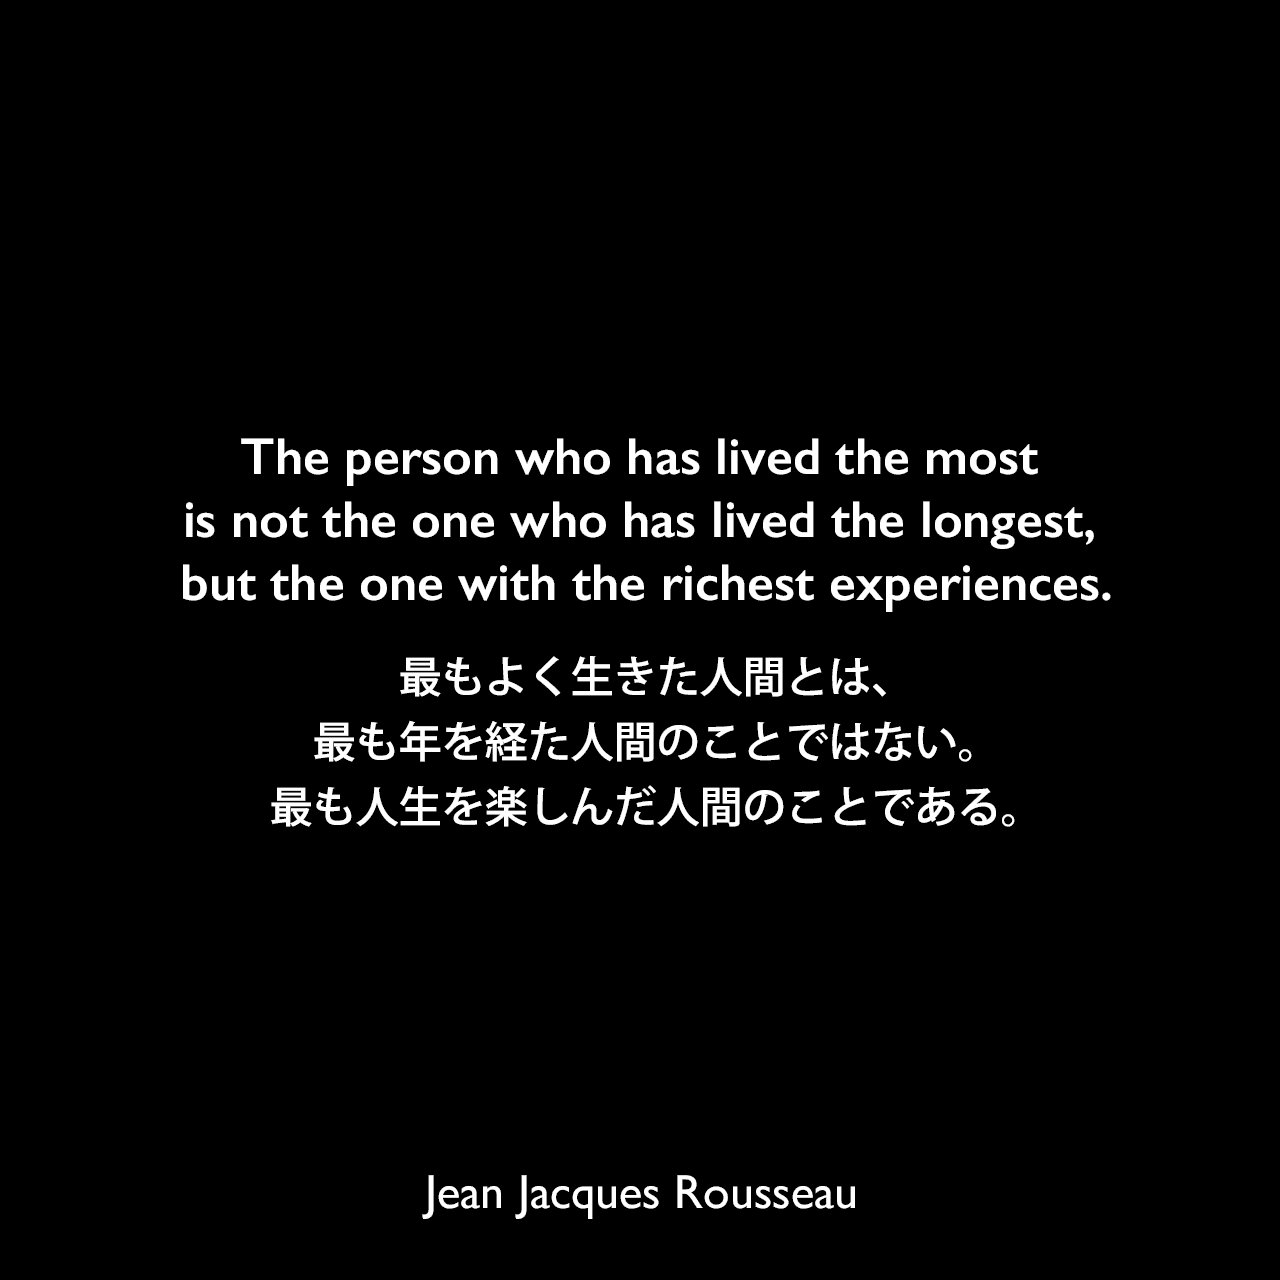 The person who has lived the most is not the one who has lived the longest, but the one with the richest experiences.最もよく生きた人間とは、最も年を経た人間のことではない。最も人生を楽しんだ人間のことである。Jean Jacques Rousseau